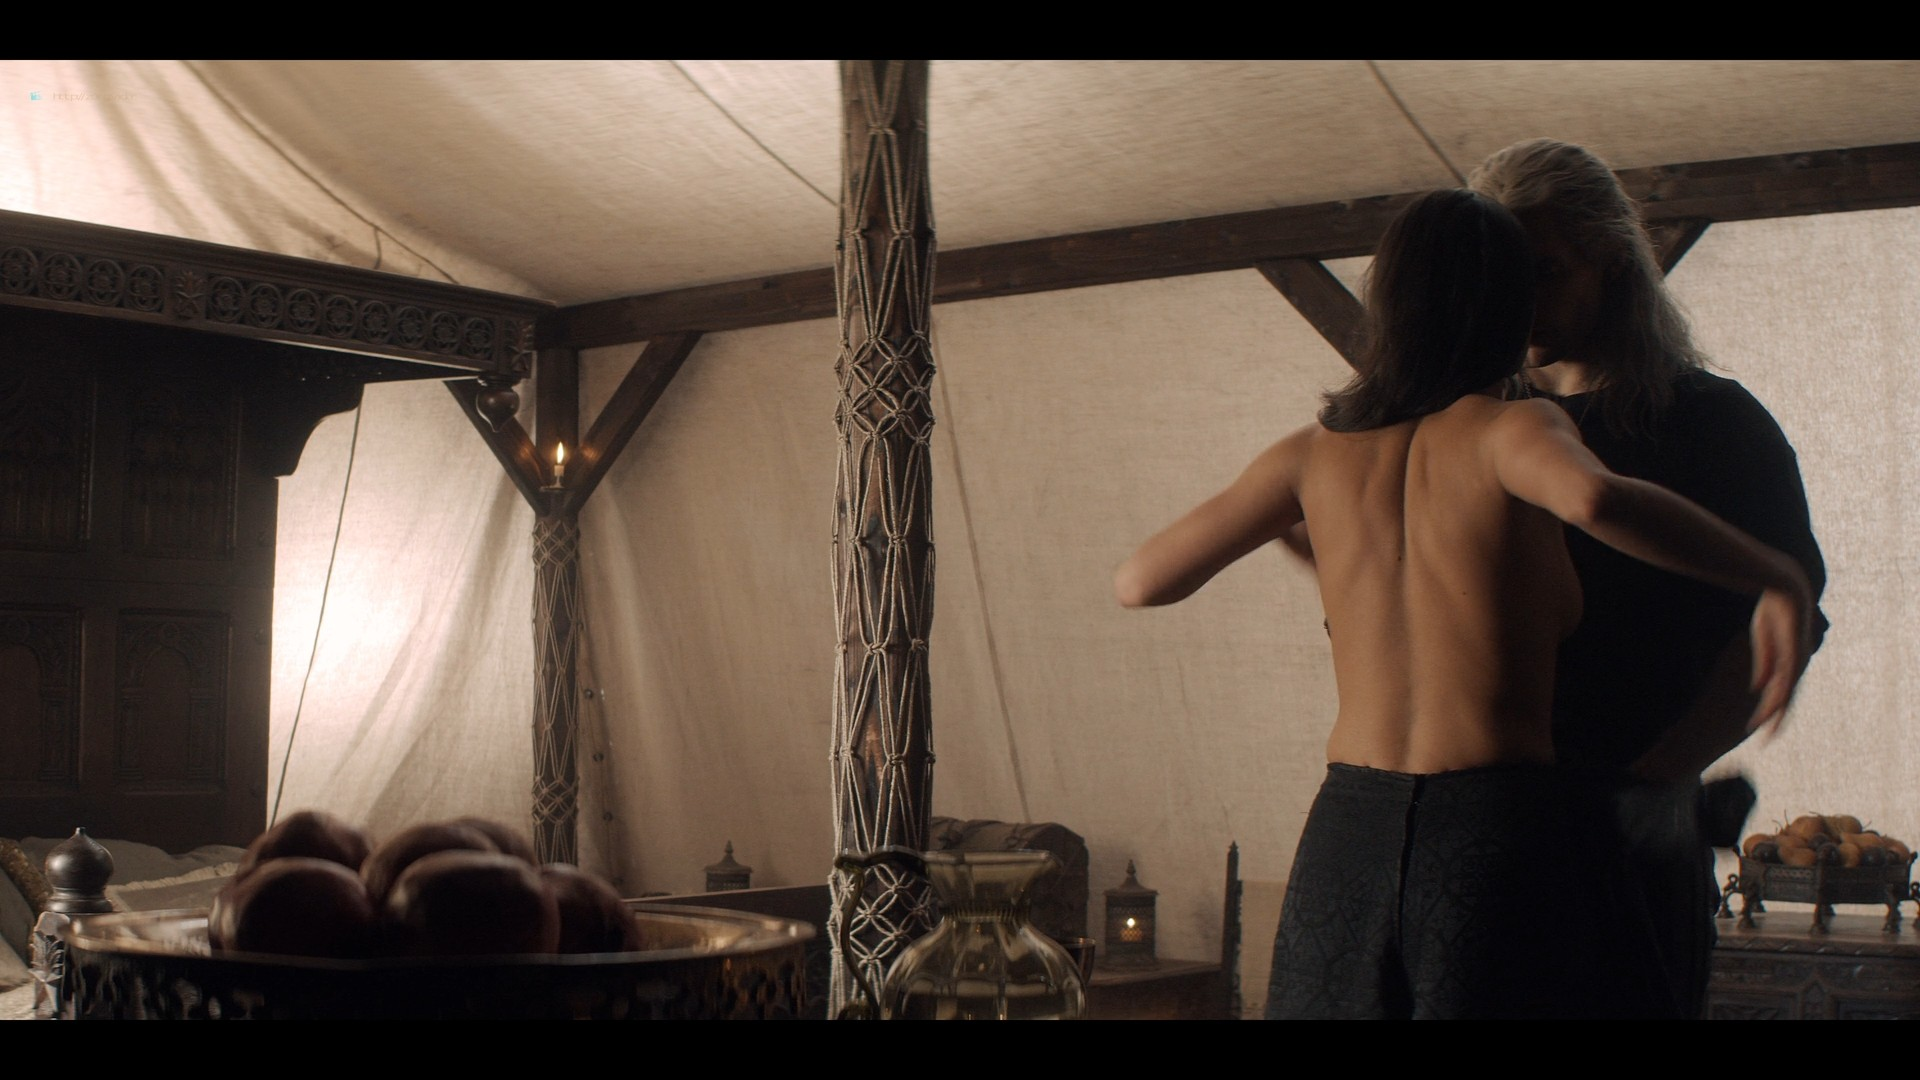 Anya Chalotra nude others nude too - The Witcher (2019) s1e5-6 HD 1080p WEB (4)